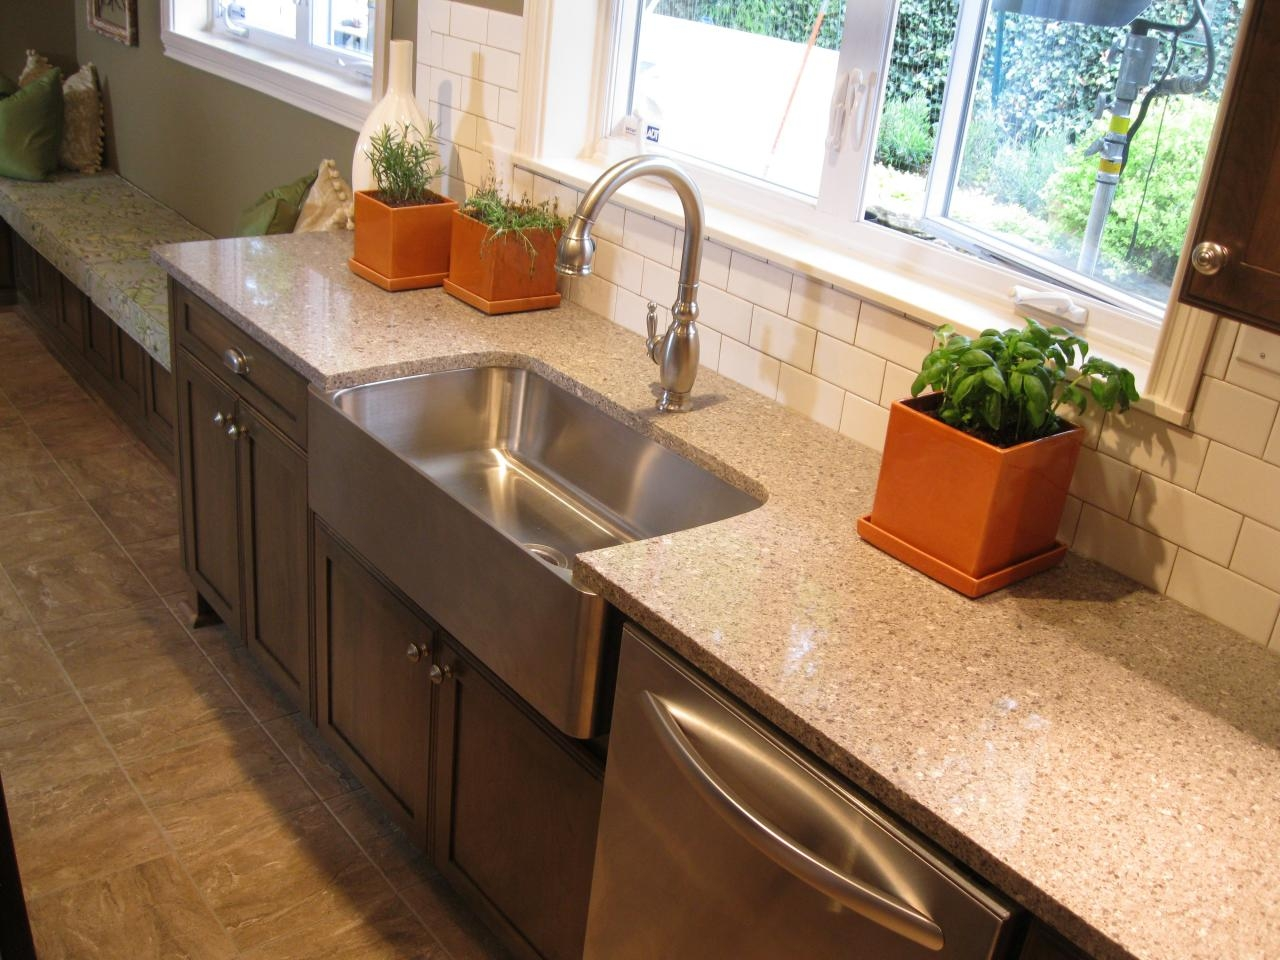 Kitchen Cabinets For Farmhouse Sink1280 X 960